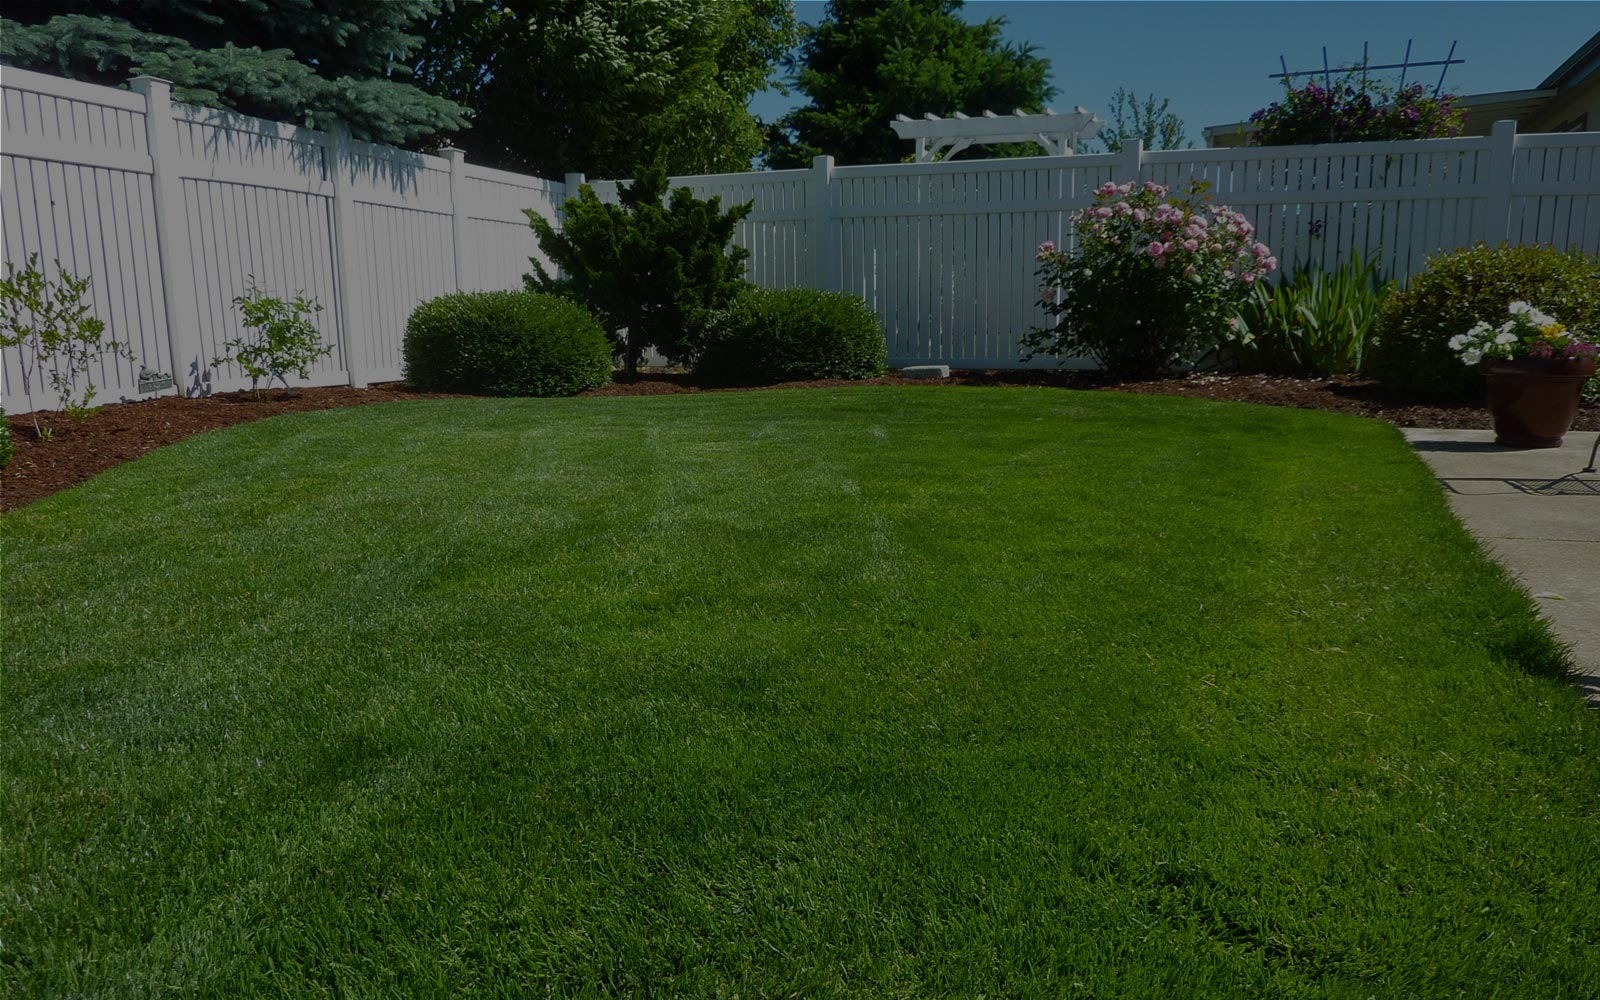 Get A Free Quote For An Outstanding Lawn Service In South Carolina